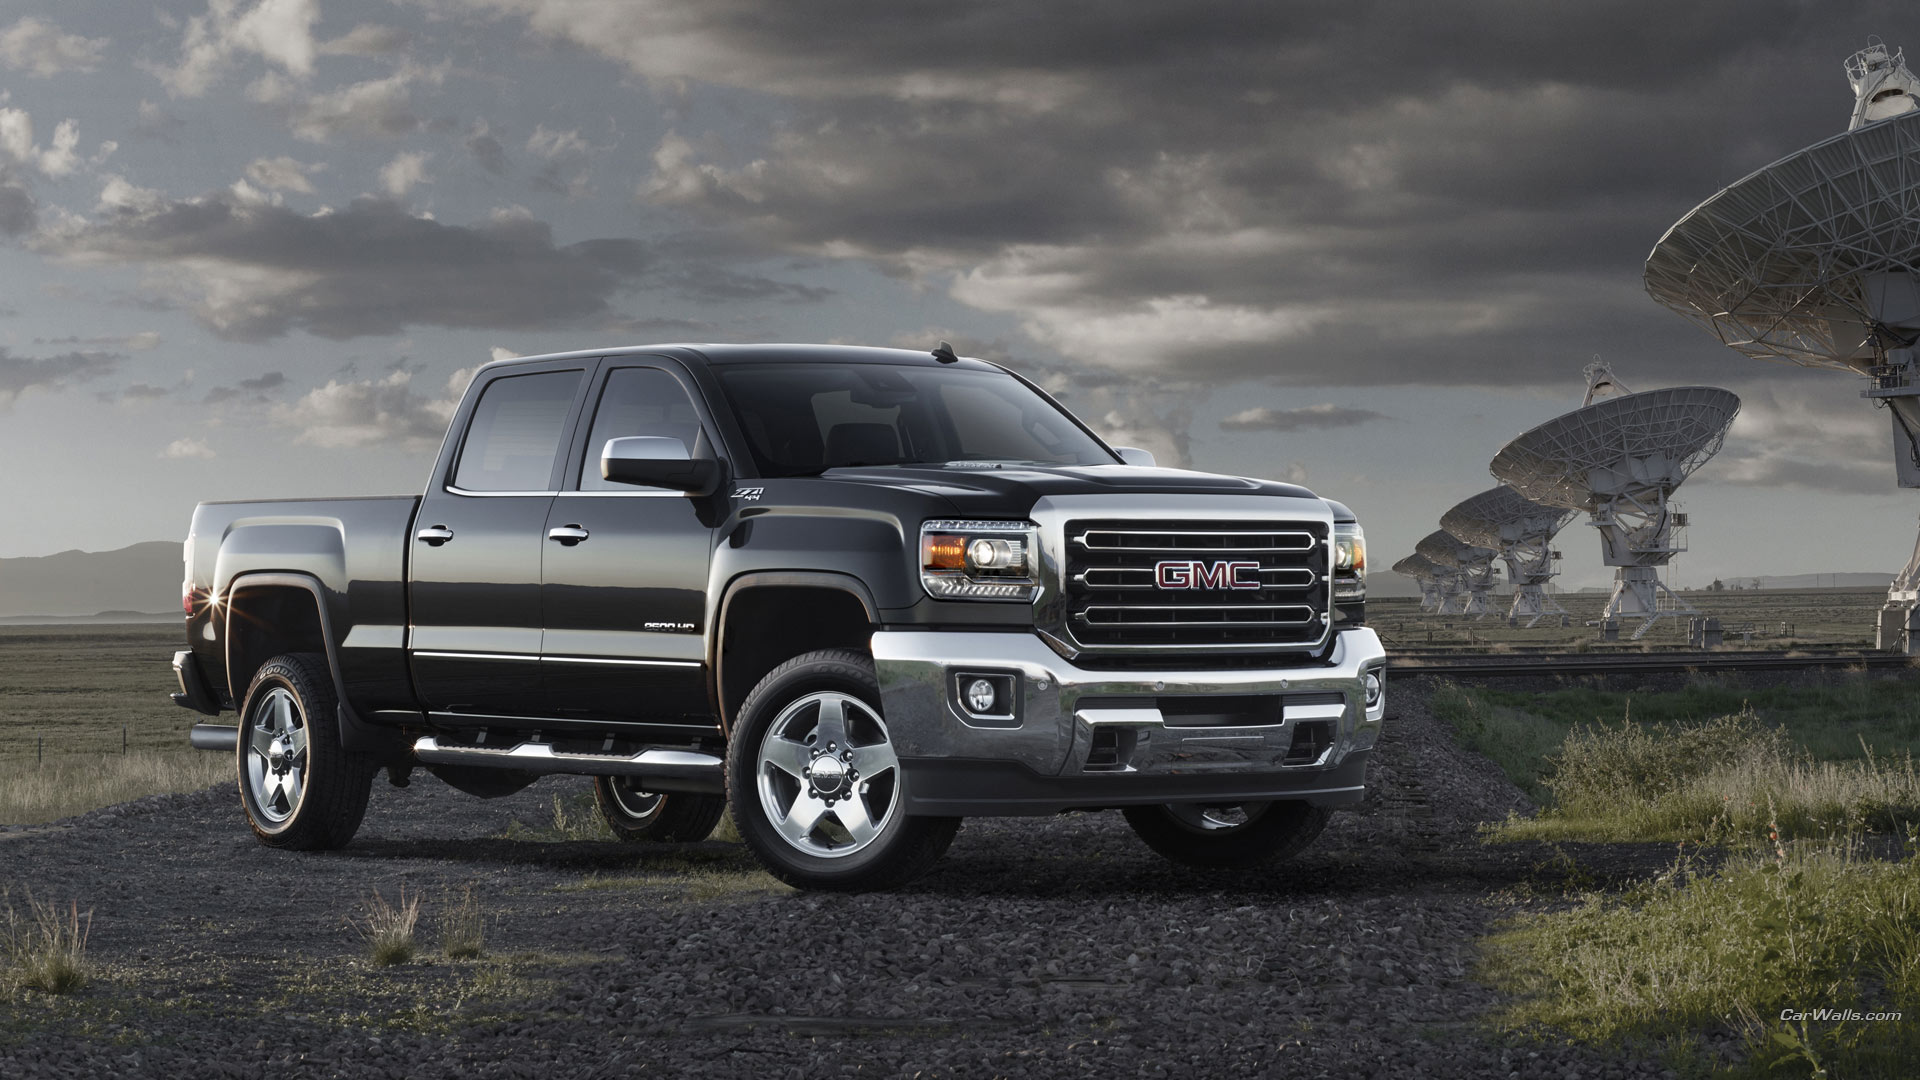 2015 GMC Sierra HD Full Wallpaper And Background Image